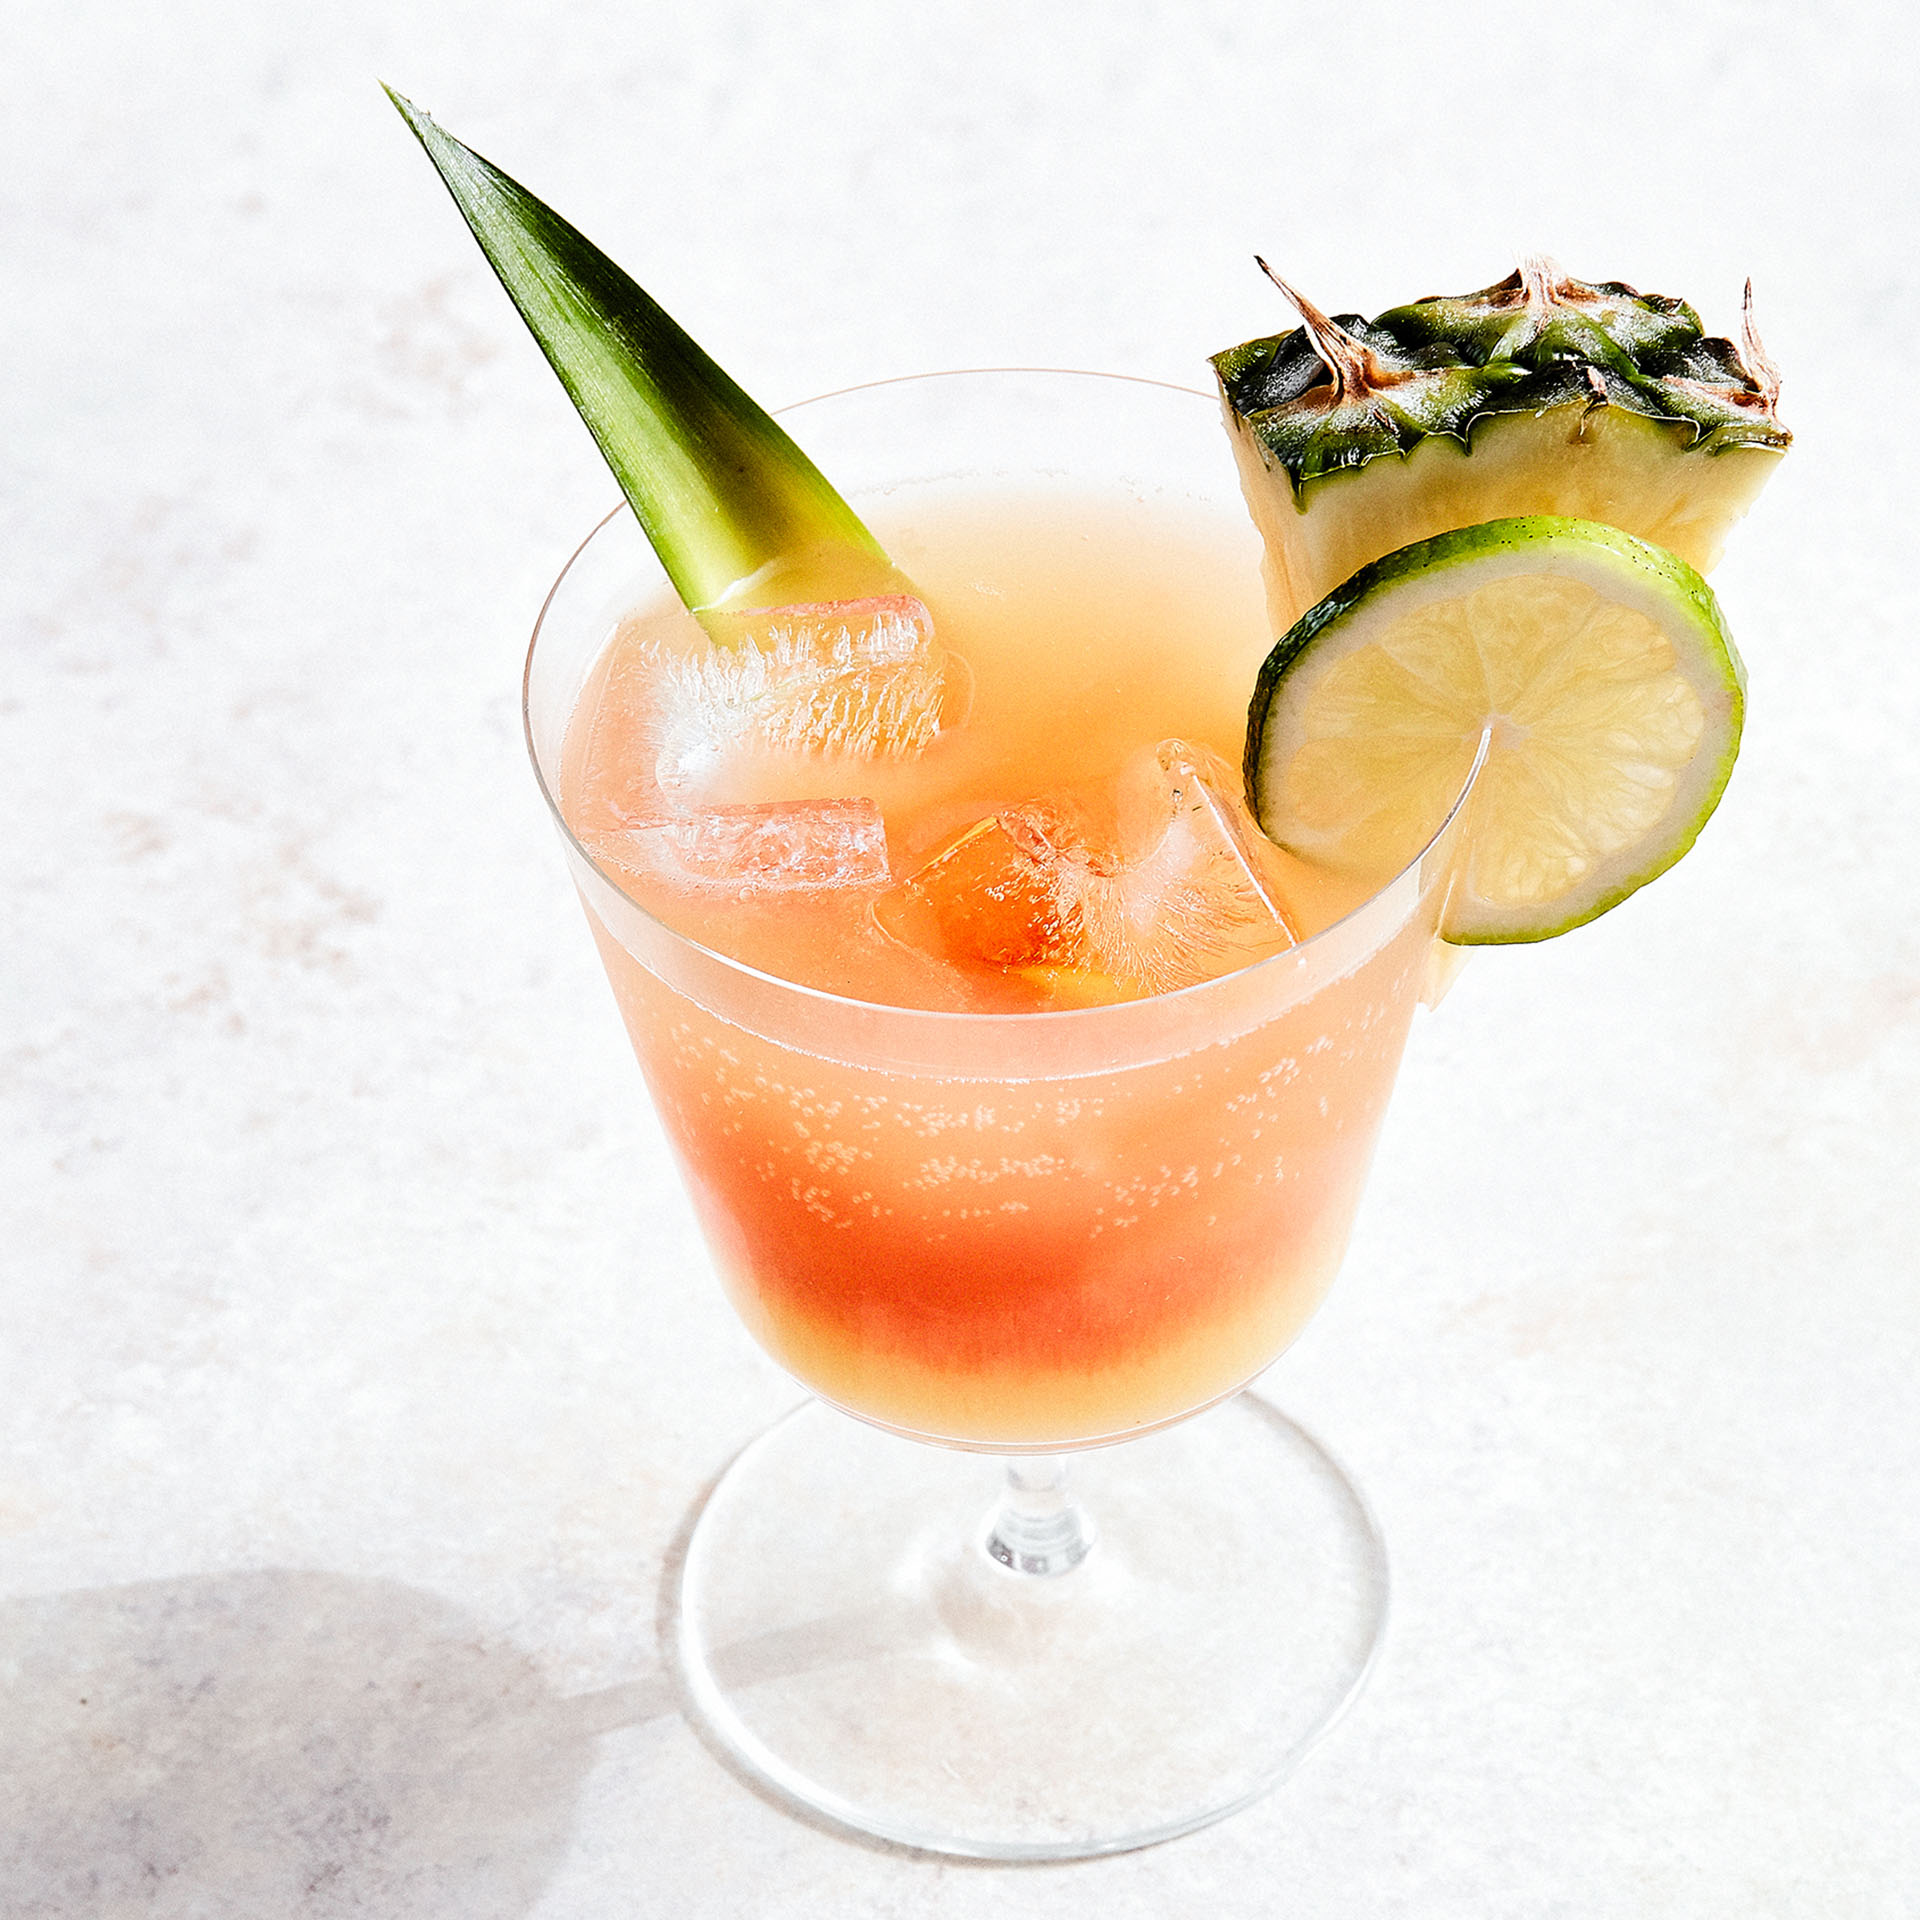 GINGER-PINEAPPLE SPRITZER  Furthermore from Equinox